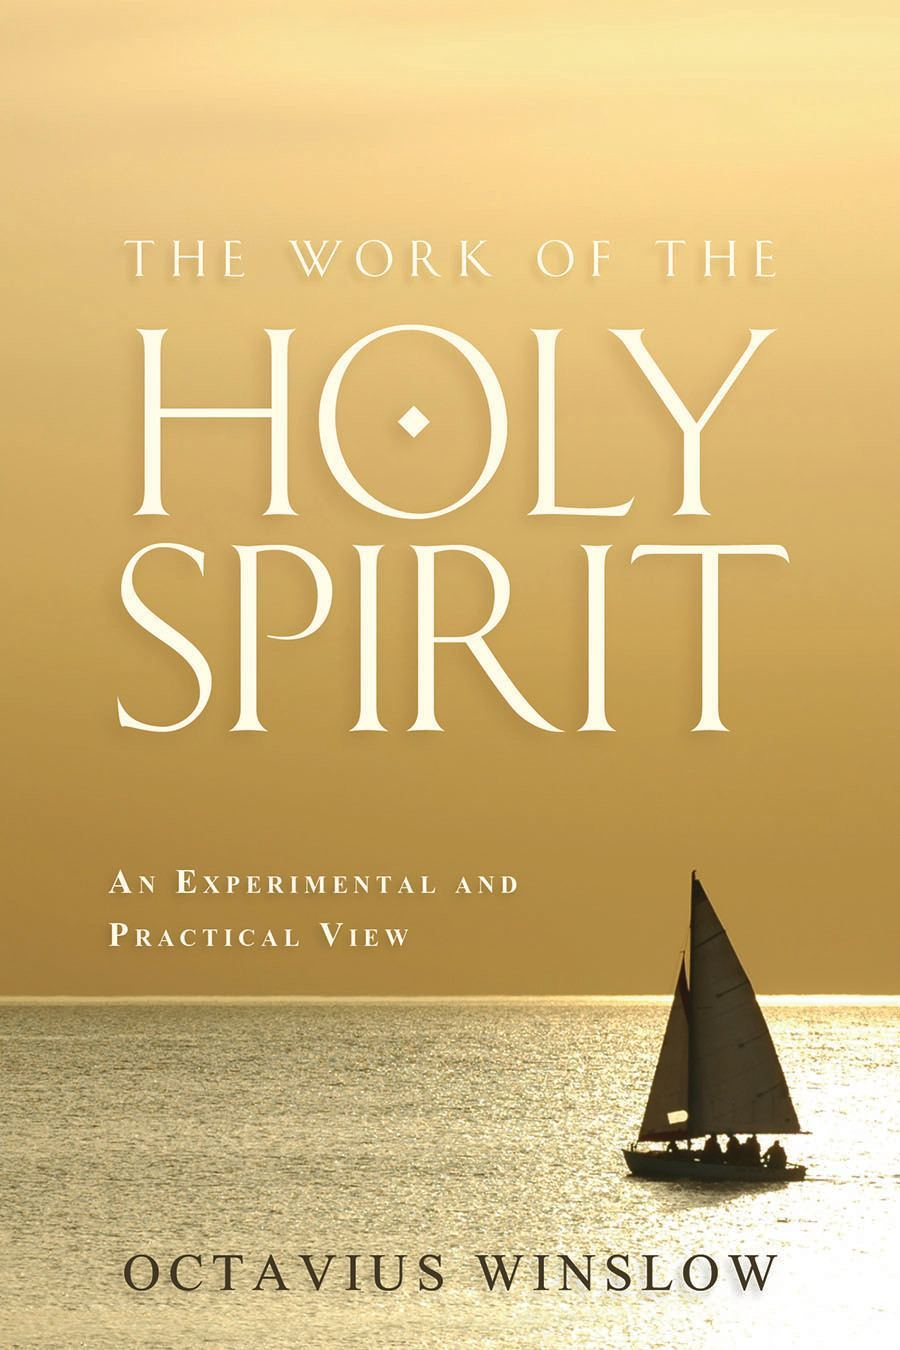 The work of the holy spirit by winslow octavius banner of truth usa thecheapjerseys Gallery